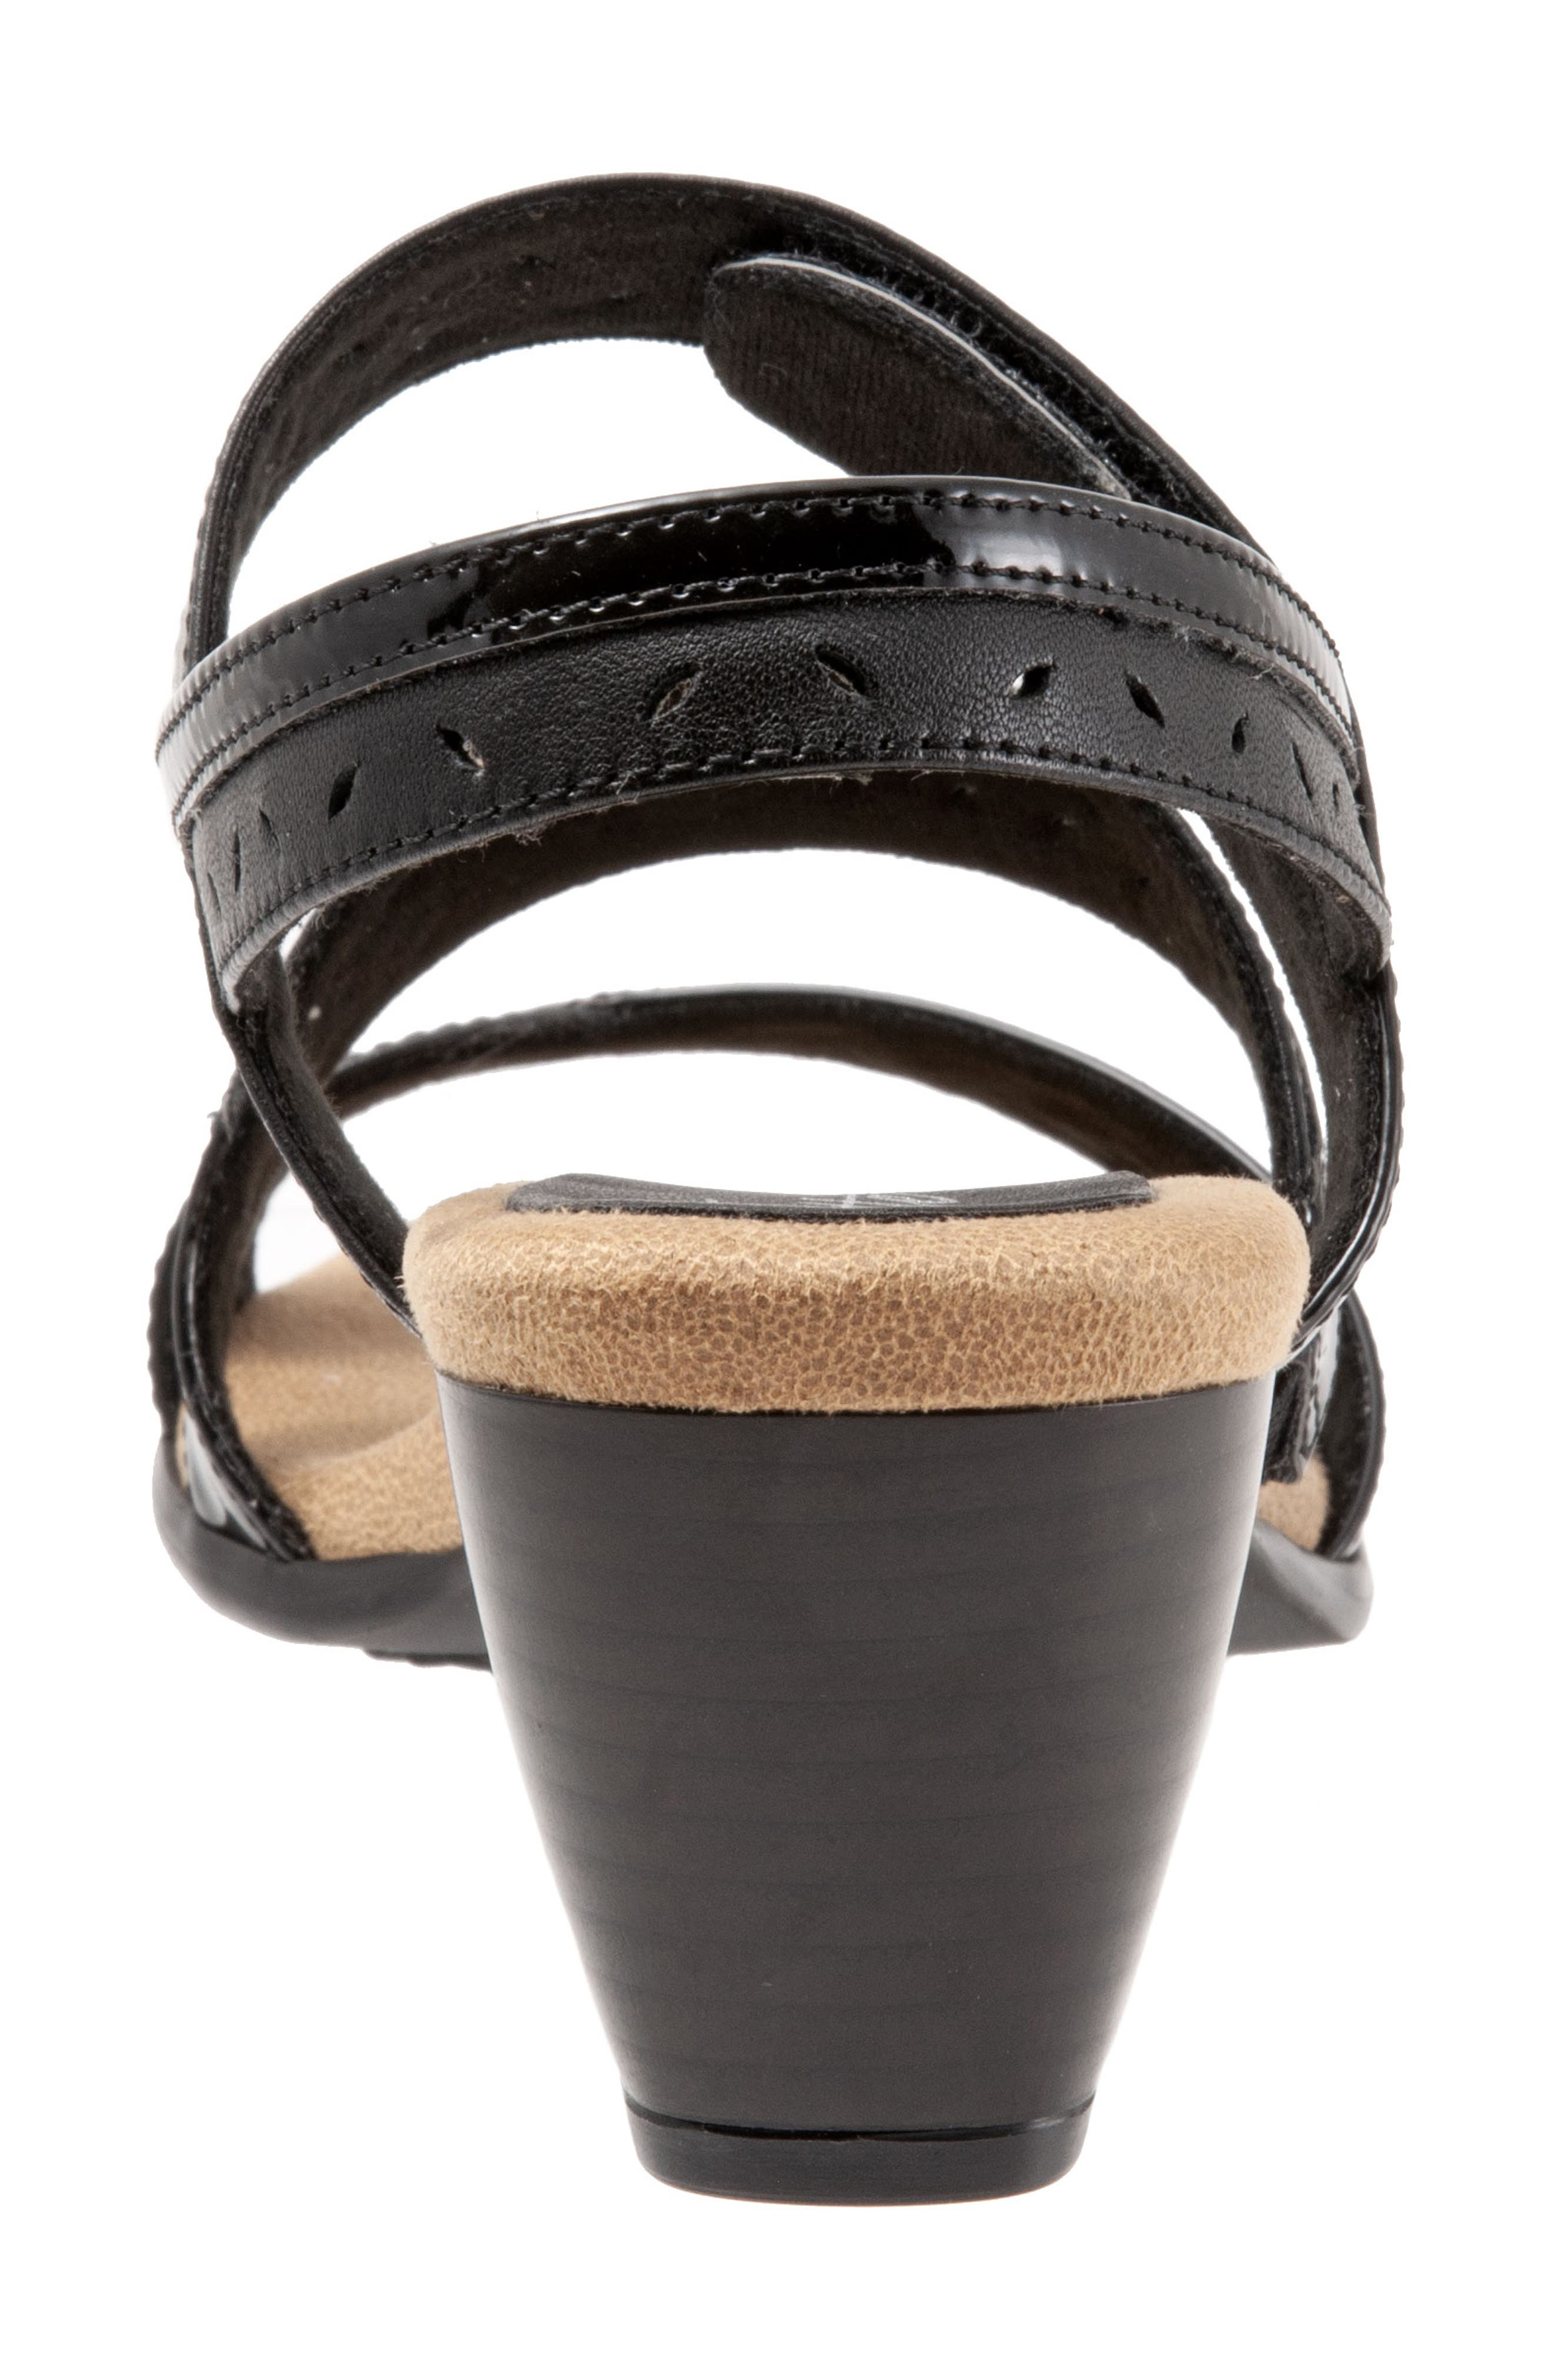 TROTTERS, Marvie Perforated Strappy Sandal, Alternate thumbnail 7, color, BLACK LEATHER